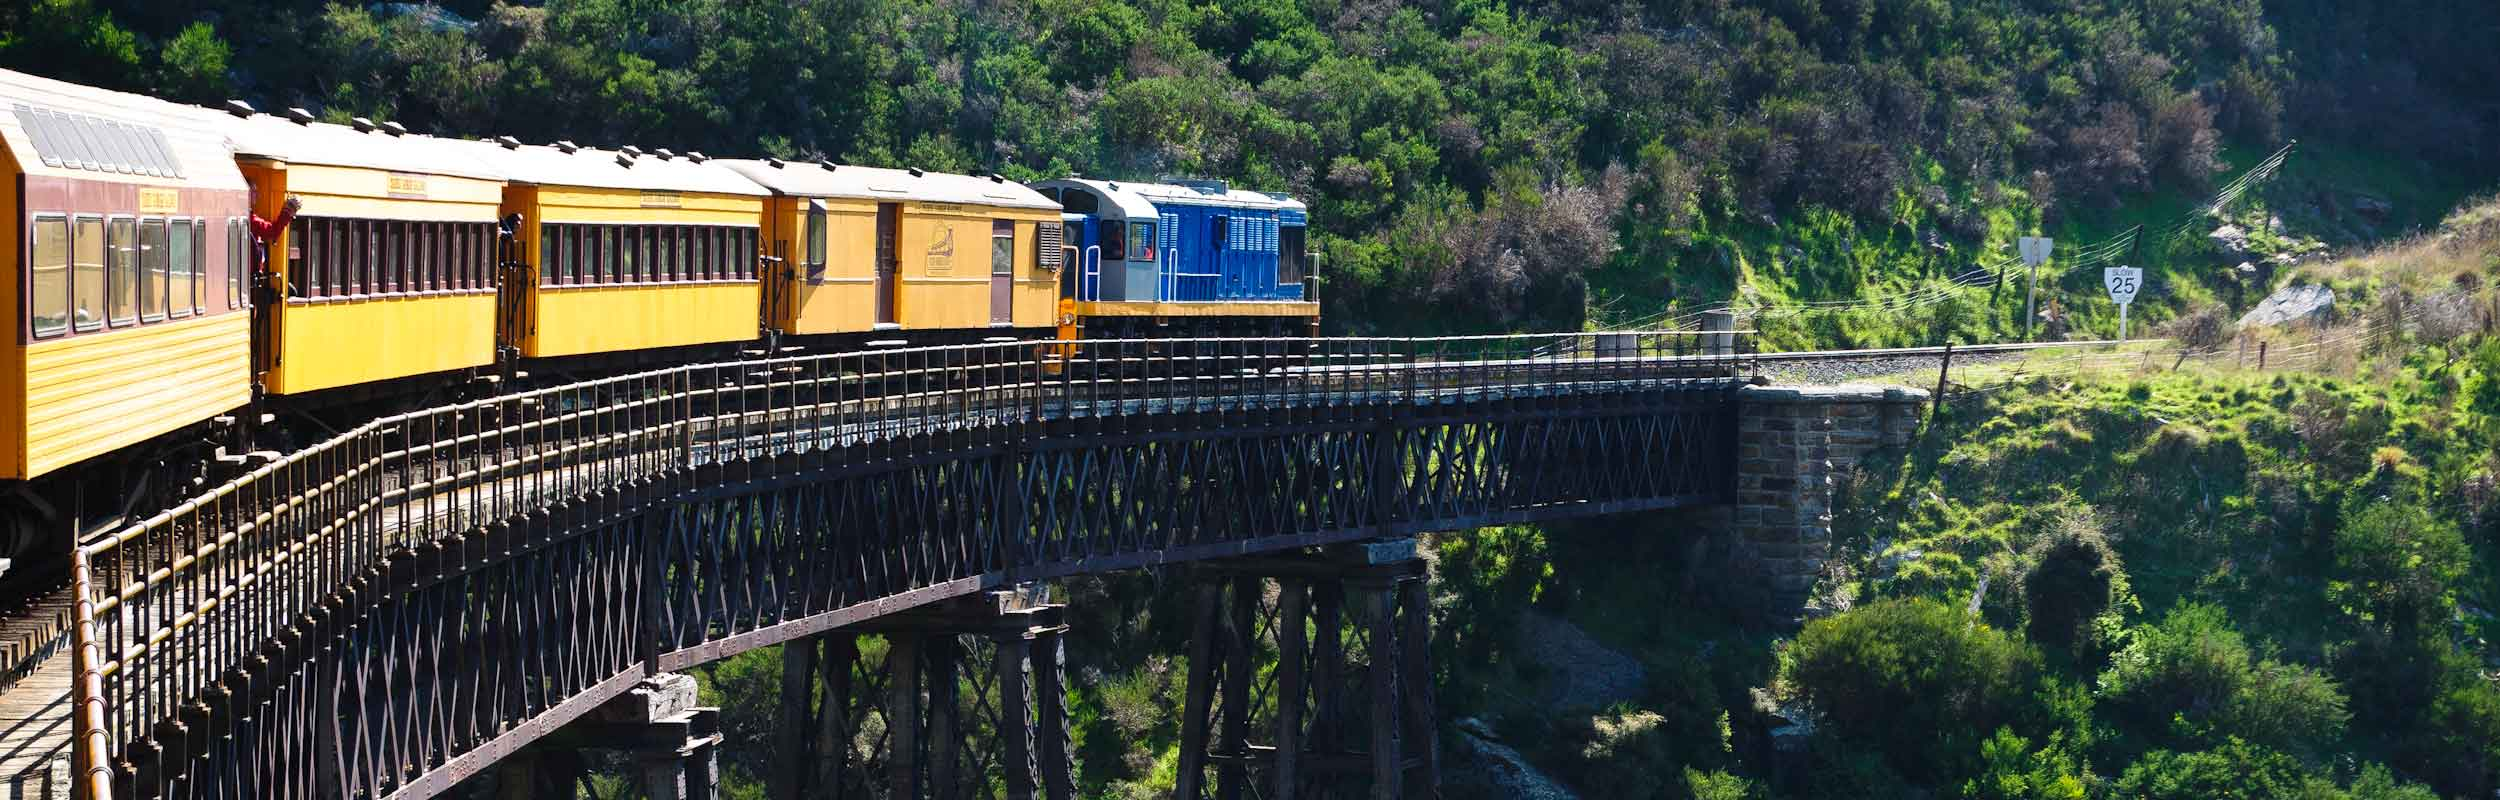 Taieri Gorge Railway - train on Wingatui Viaduct